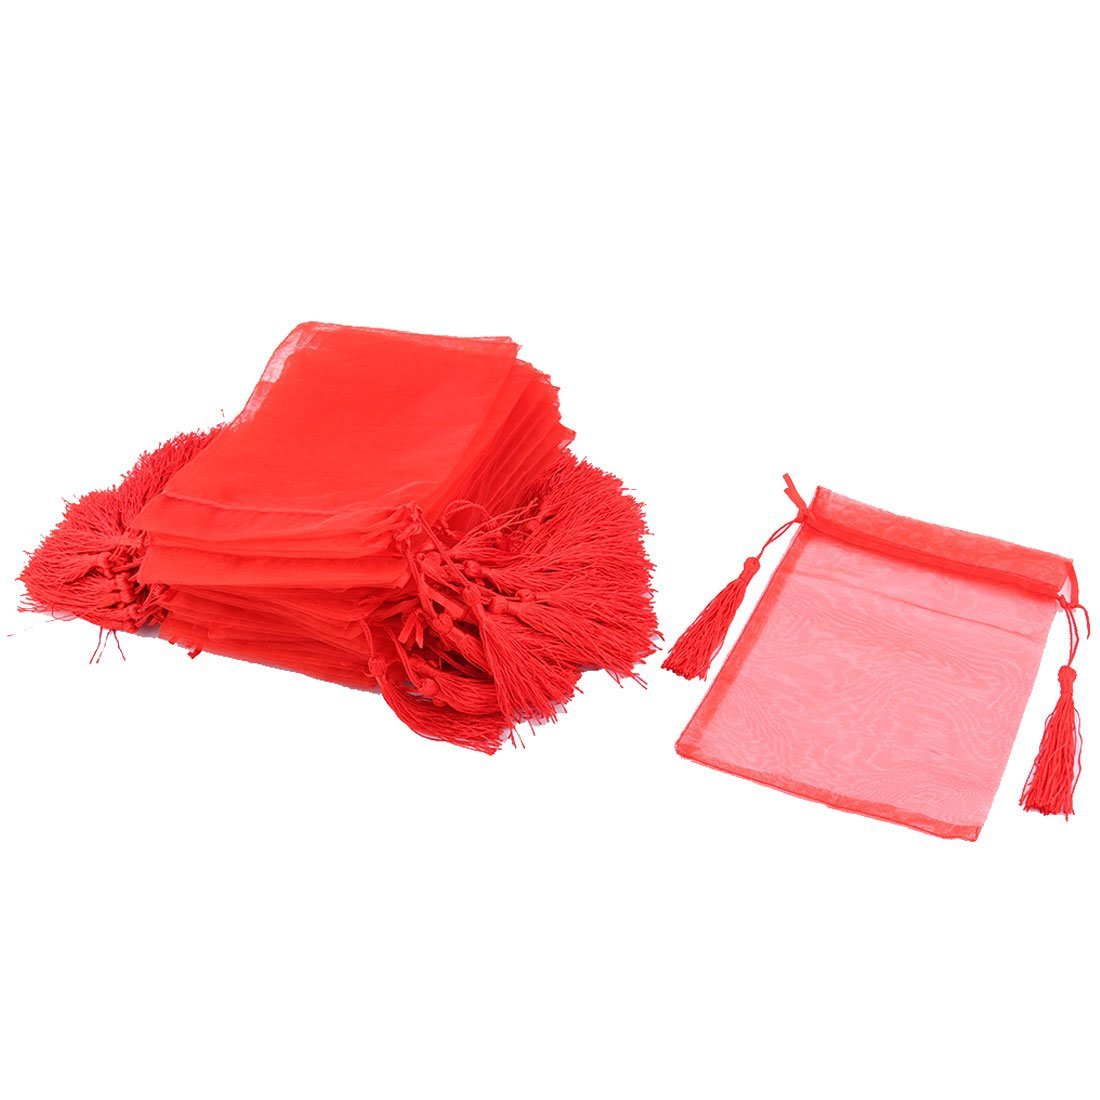 uxcell Organza Wedding Party Tassels Decor Candy Jewelry Pouch Gift Bag 13 x 18cm 50 Pcs Red